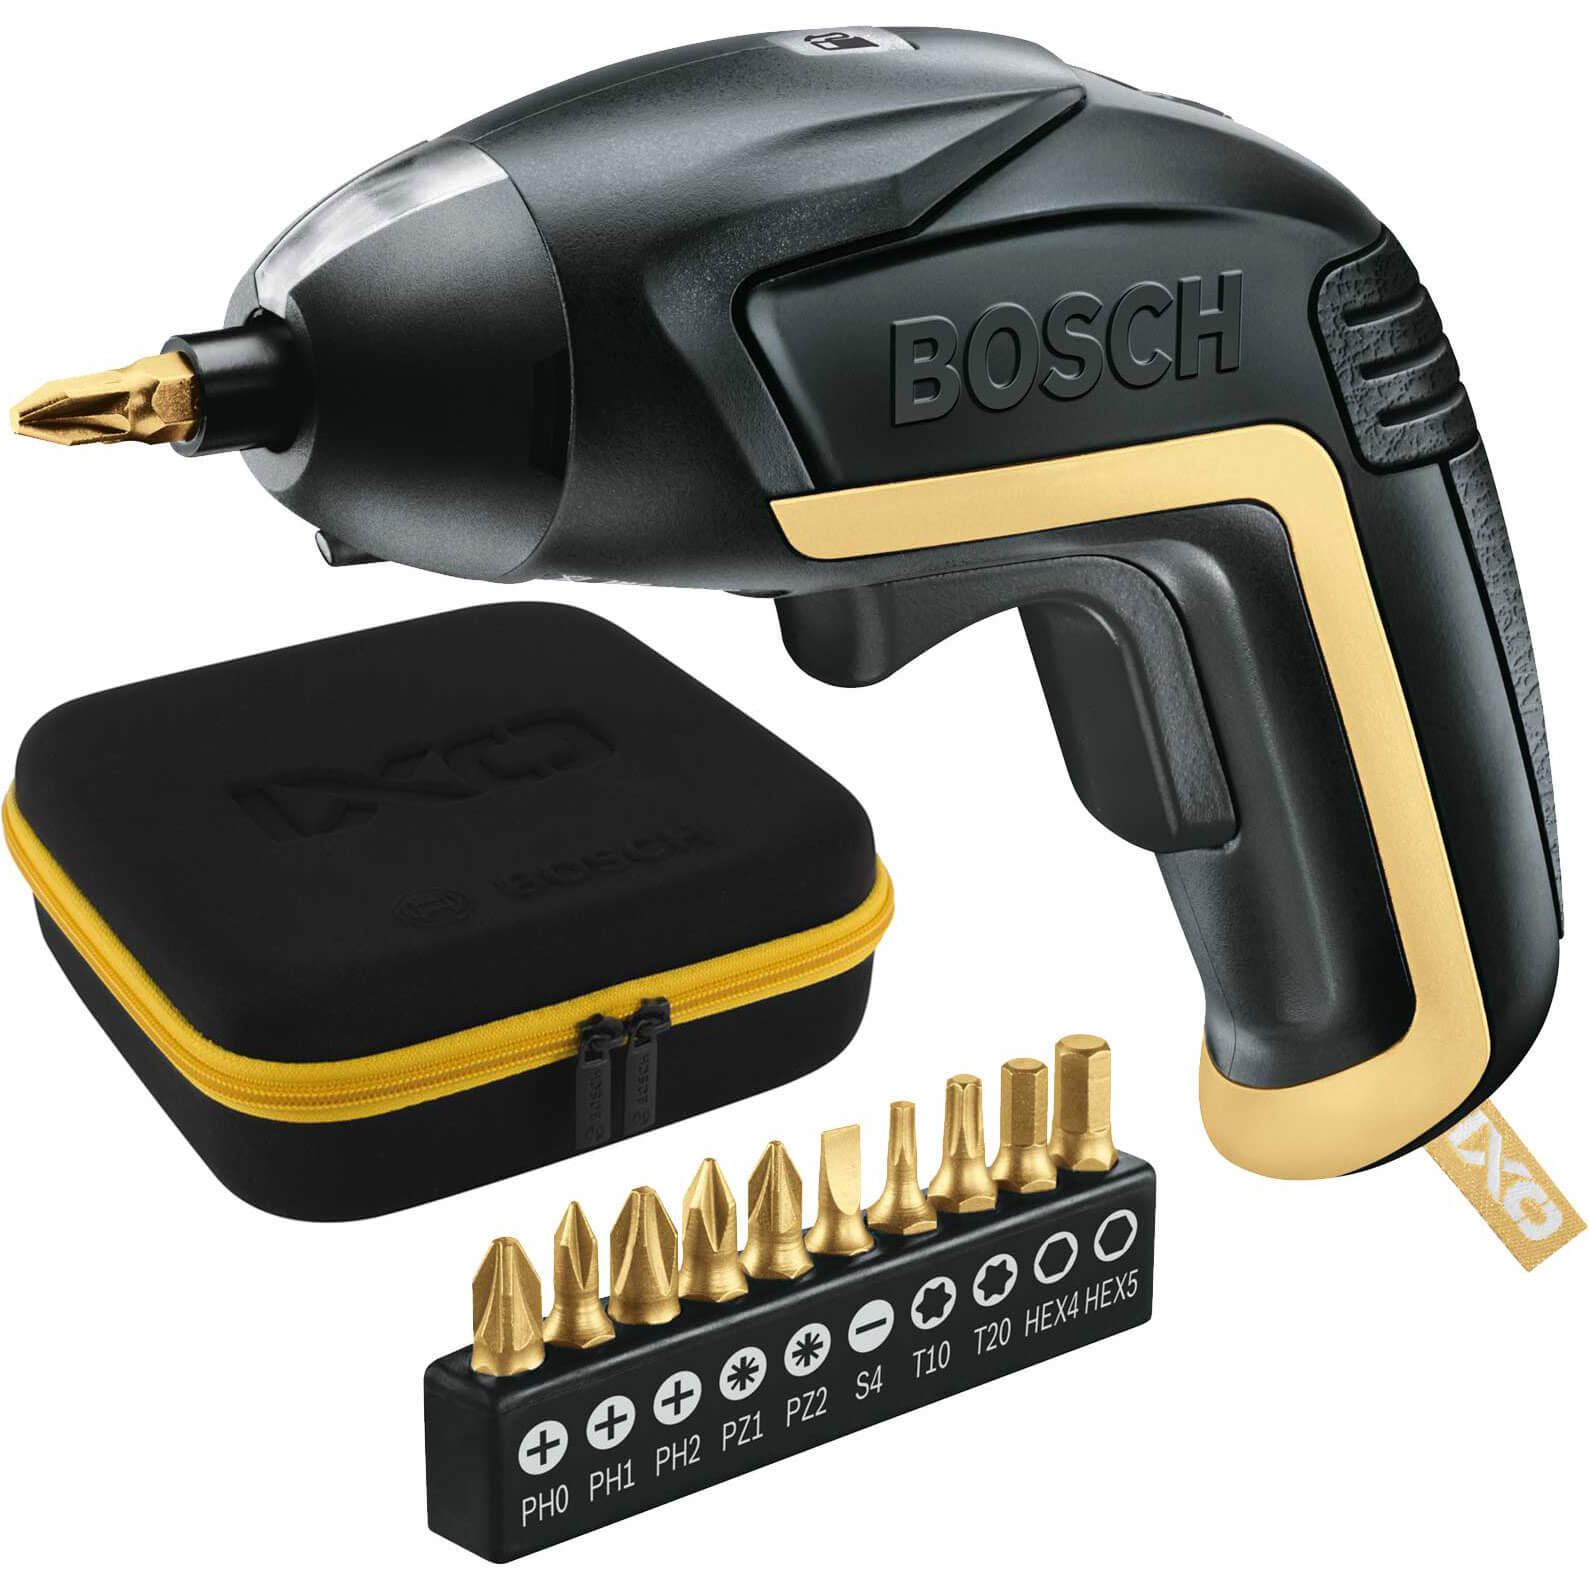 Bosch Ixo V Test : bosch ixo v cordless screwdriver anniversary edition ~ Watch28wear.com Haus und Dekorationen